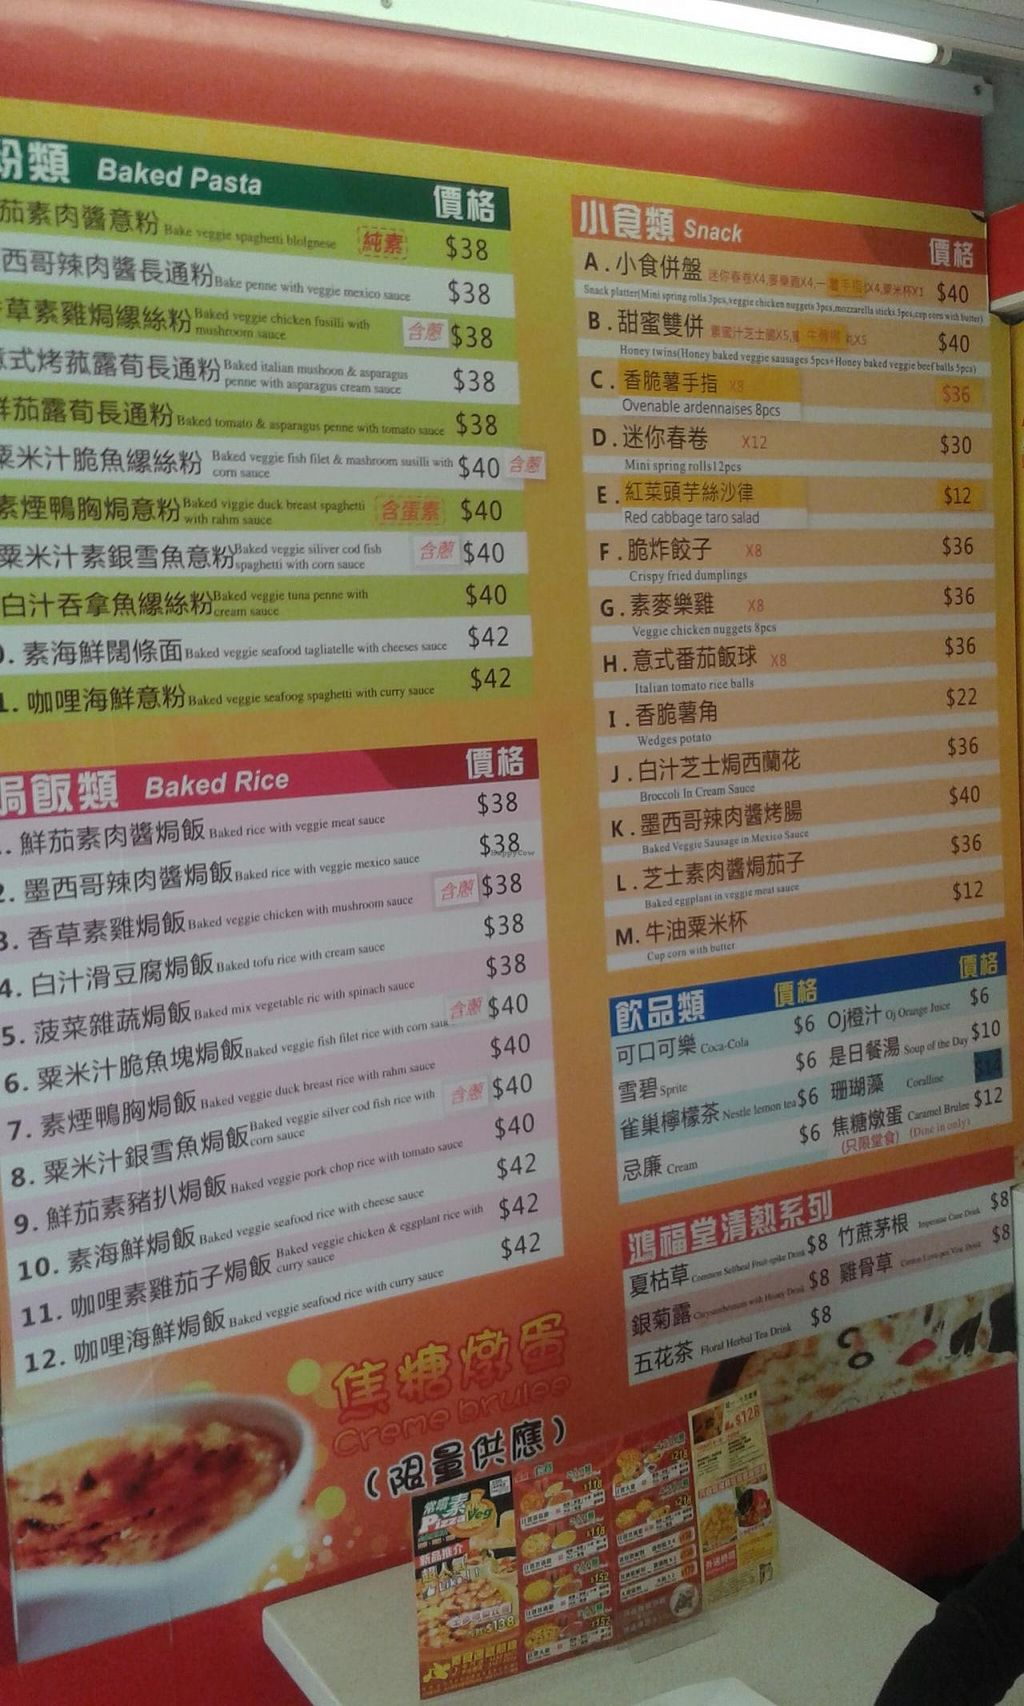 """Photo of Pizzaveg - Tuen Mun  by <a href=""""/members/profile/Stevie"""">Stevie</a> <br/>Menu 2 <br/> December 14, 2014  - <a href='/contact/abuse/image/52174/87955'>Report</a>"""